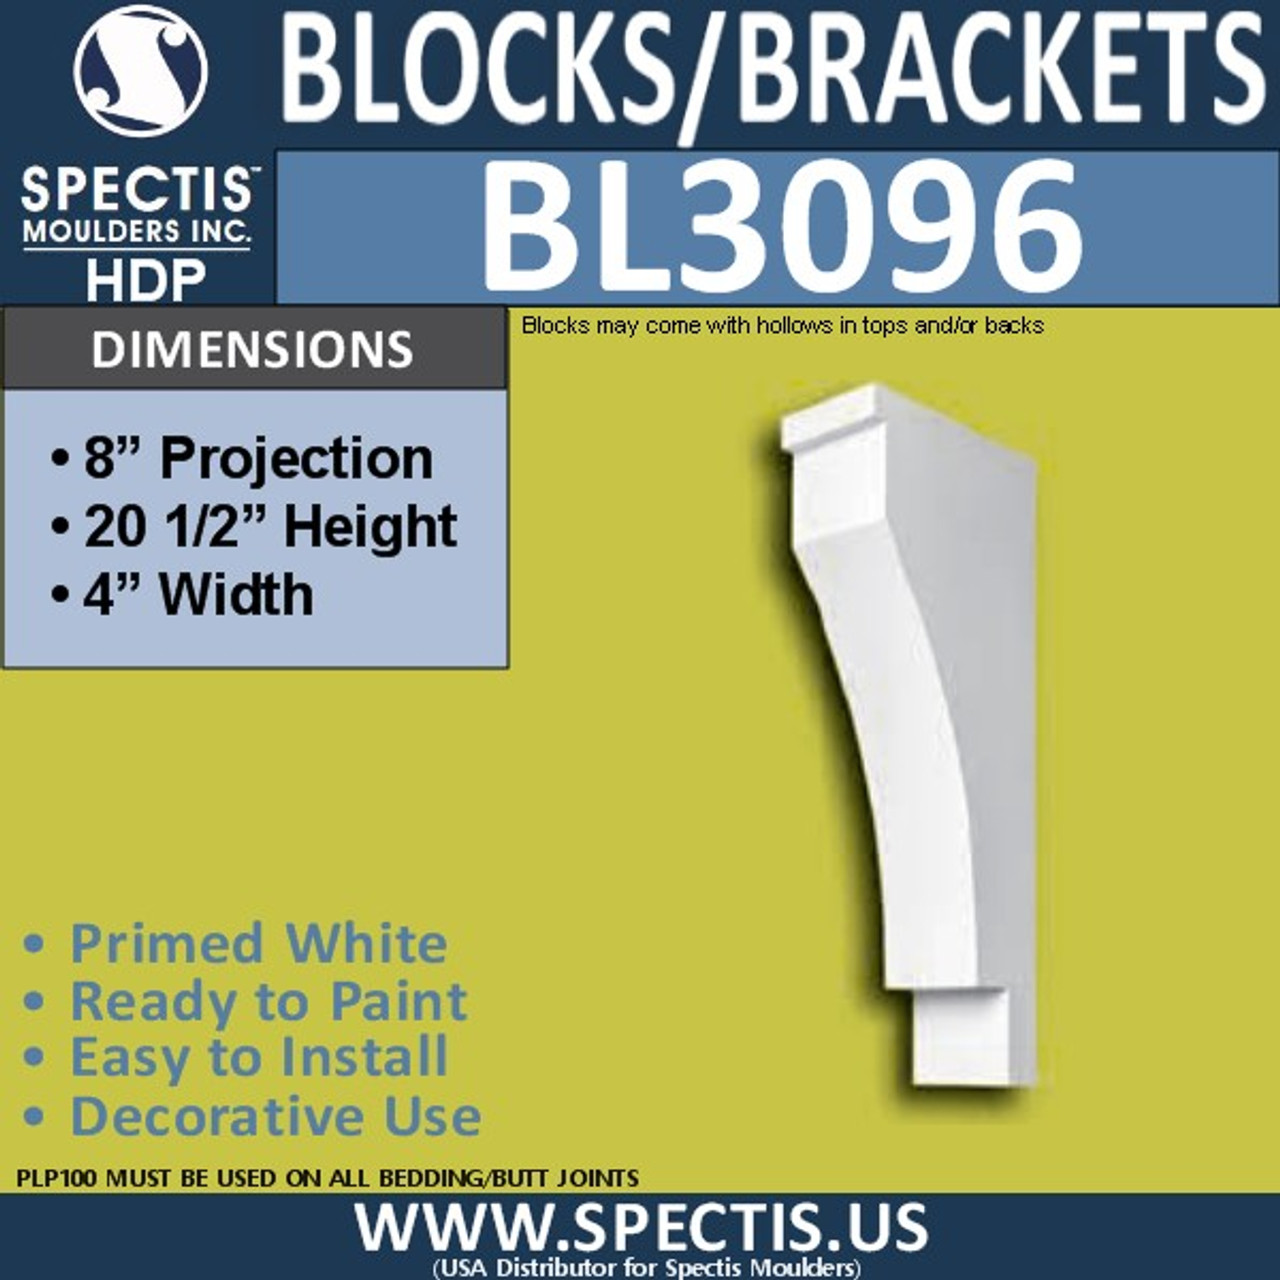 "BL3096 Eave Block or Bracket 4""W x 20.5""H x 8"" P"